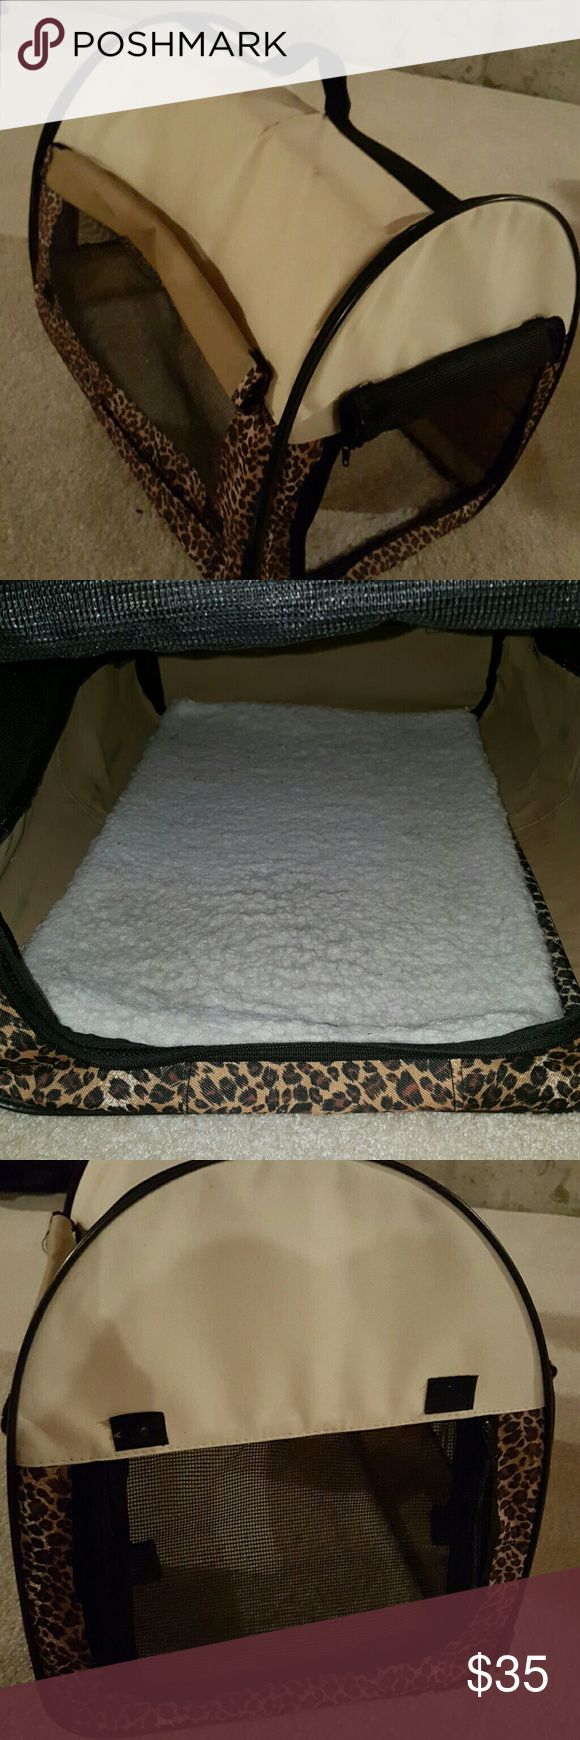 Soft Dog Crate Cheetah print. Upto 12 pd dog Windows roll up or down.  Soft sheep skin removable bottom.  Handle on top. Very nice condition. Hardly used. My girl was 8 pounds.. It can comfortable fit 12 pounds.  I will pay the extra shipping if there is any. Other